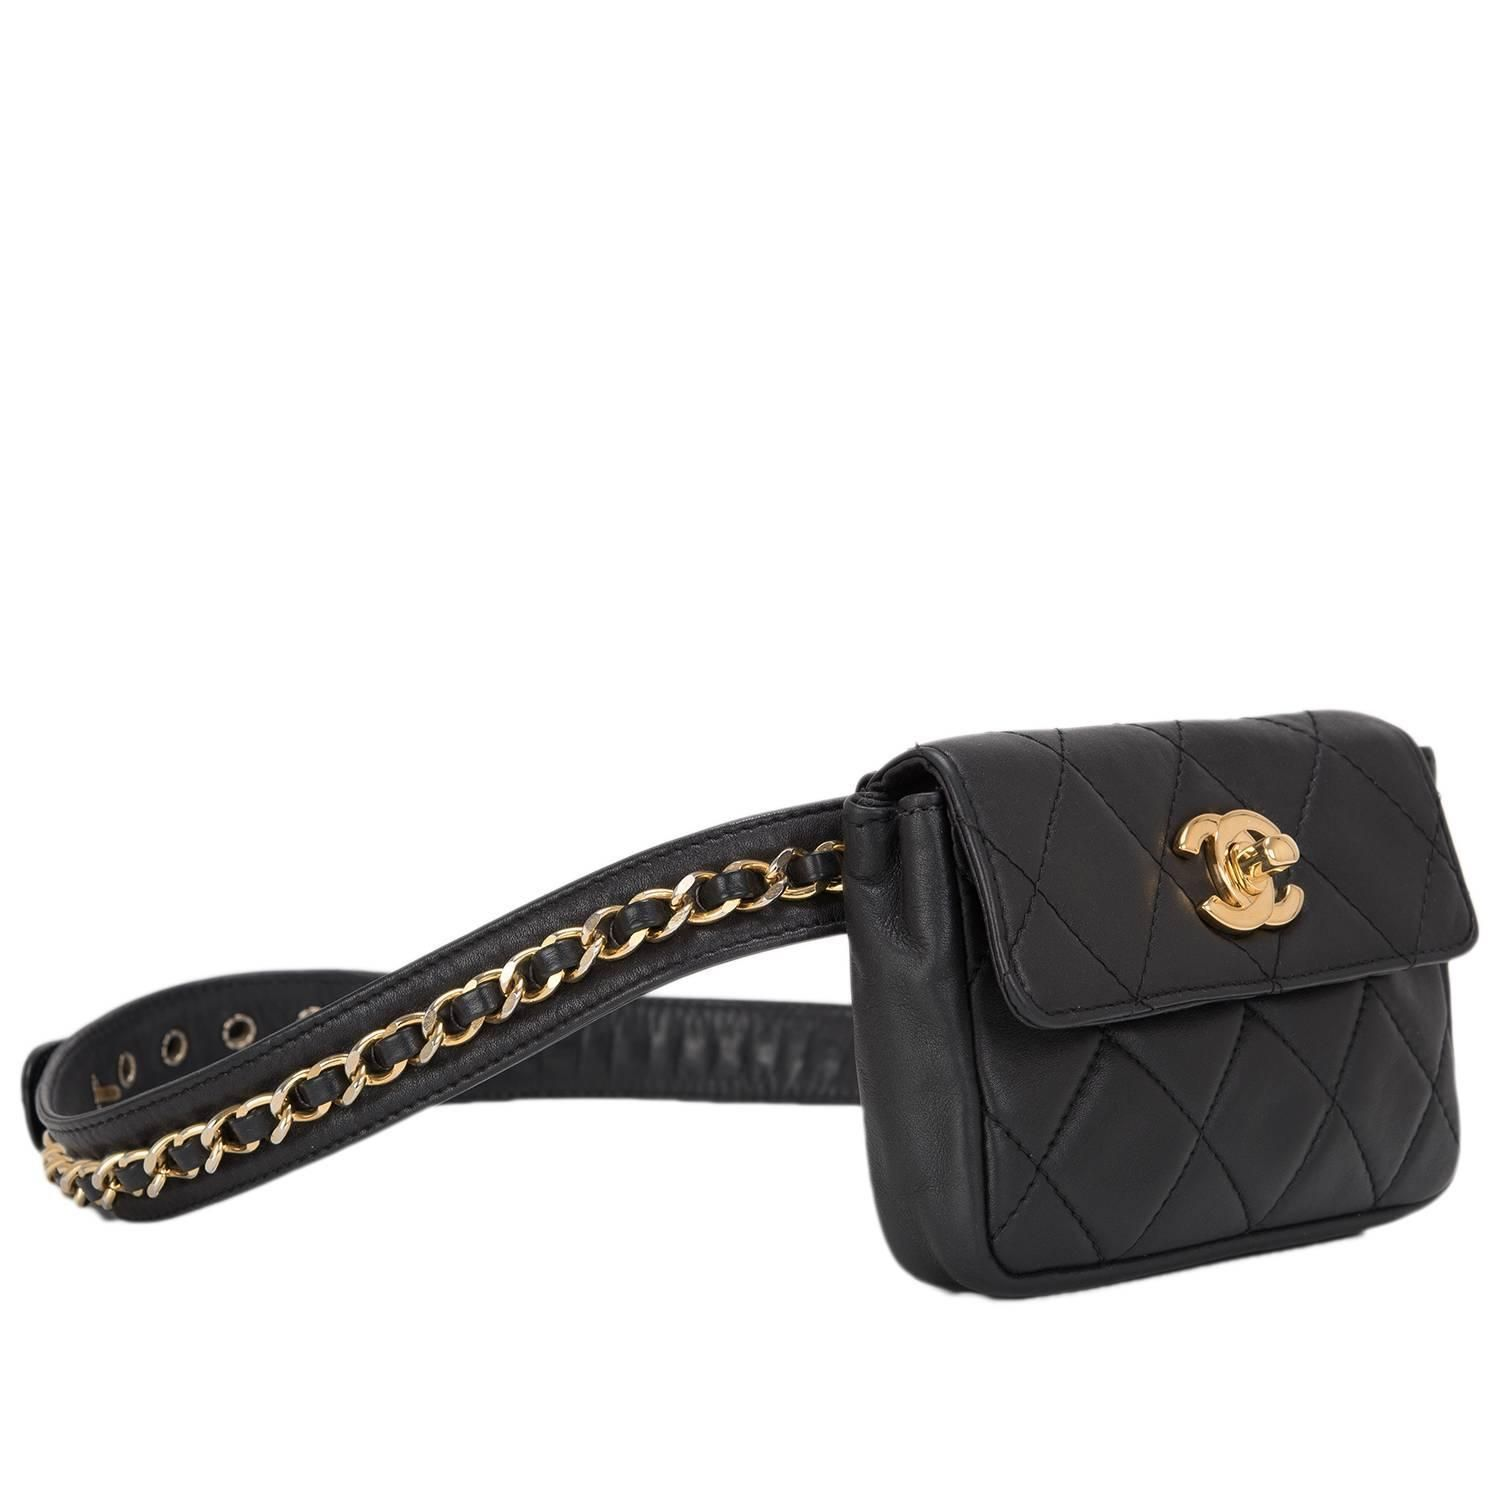 36c383a643b845 Chanel Vintage Black Quilted Lambskin Iconic Chained Fanny Pack image 2